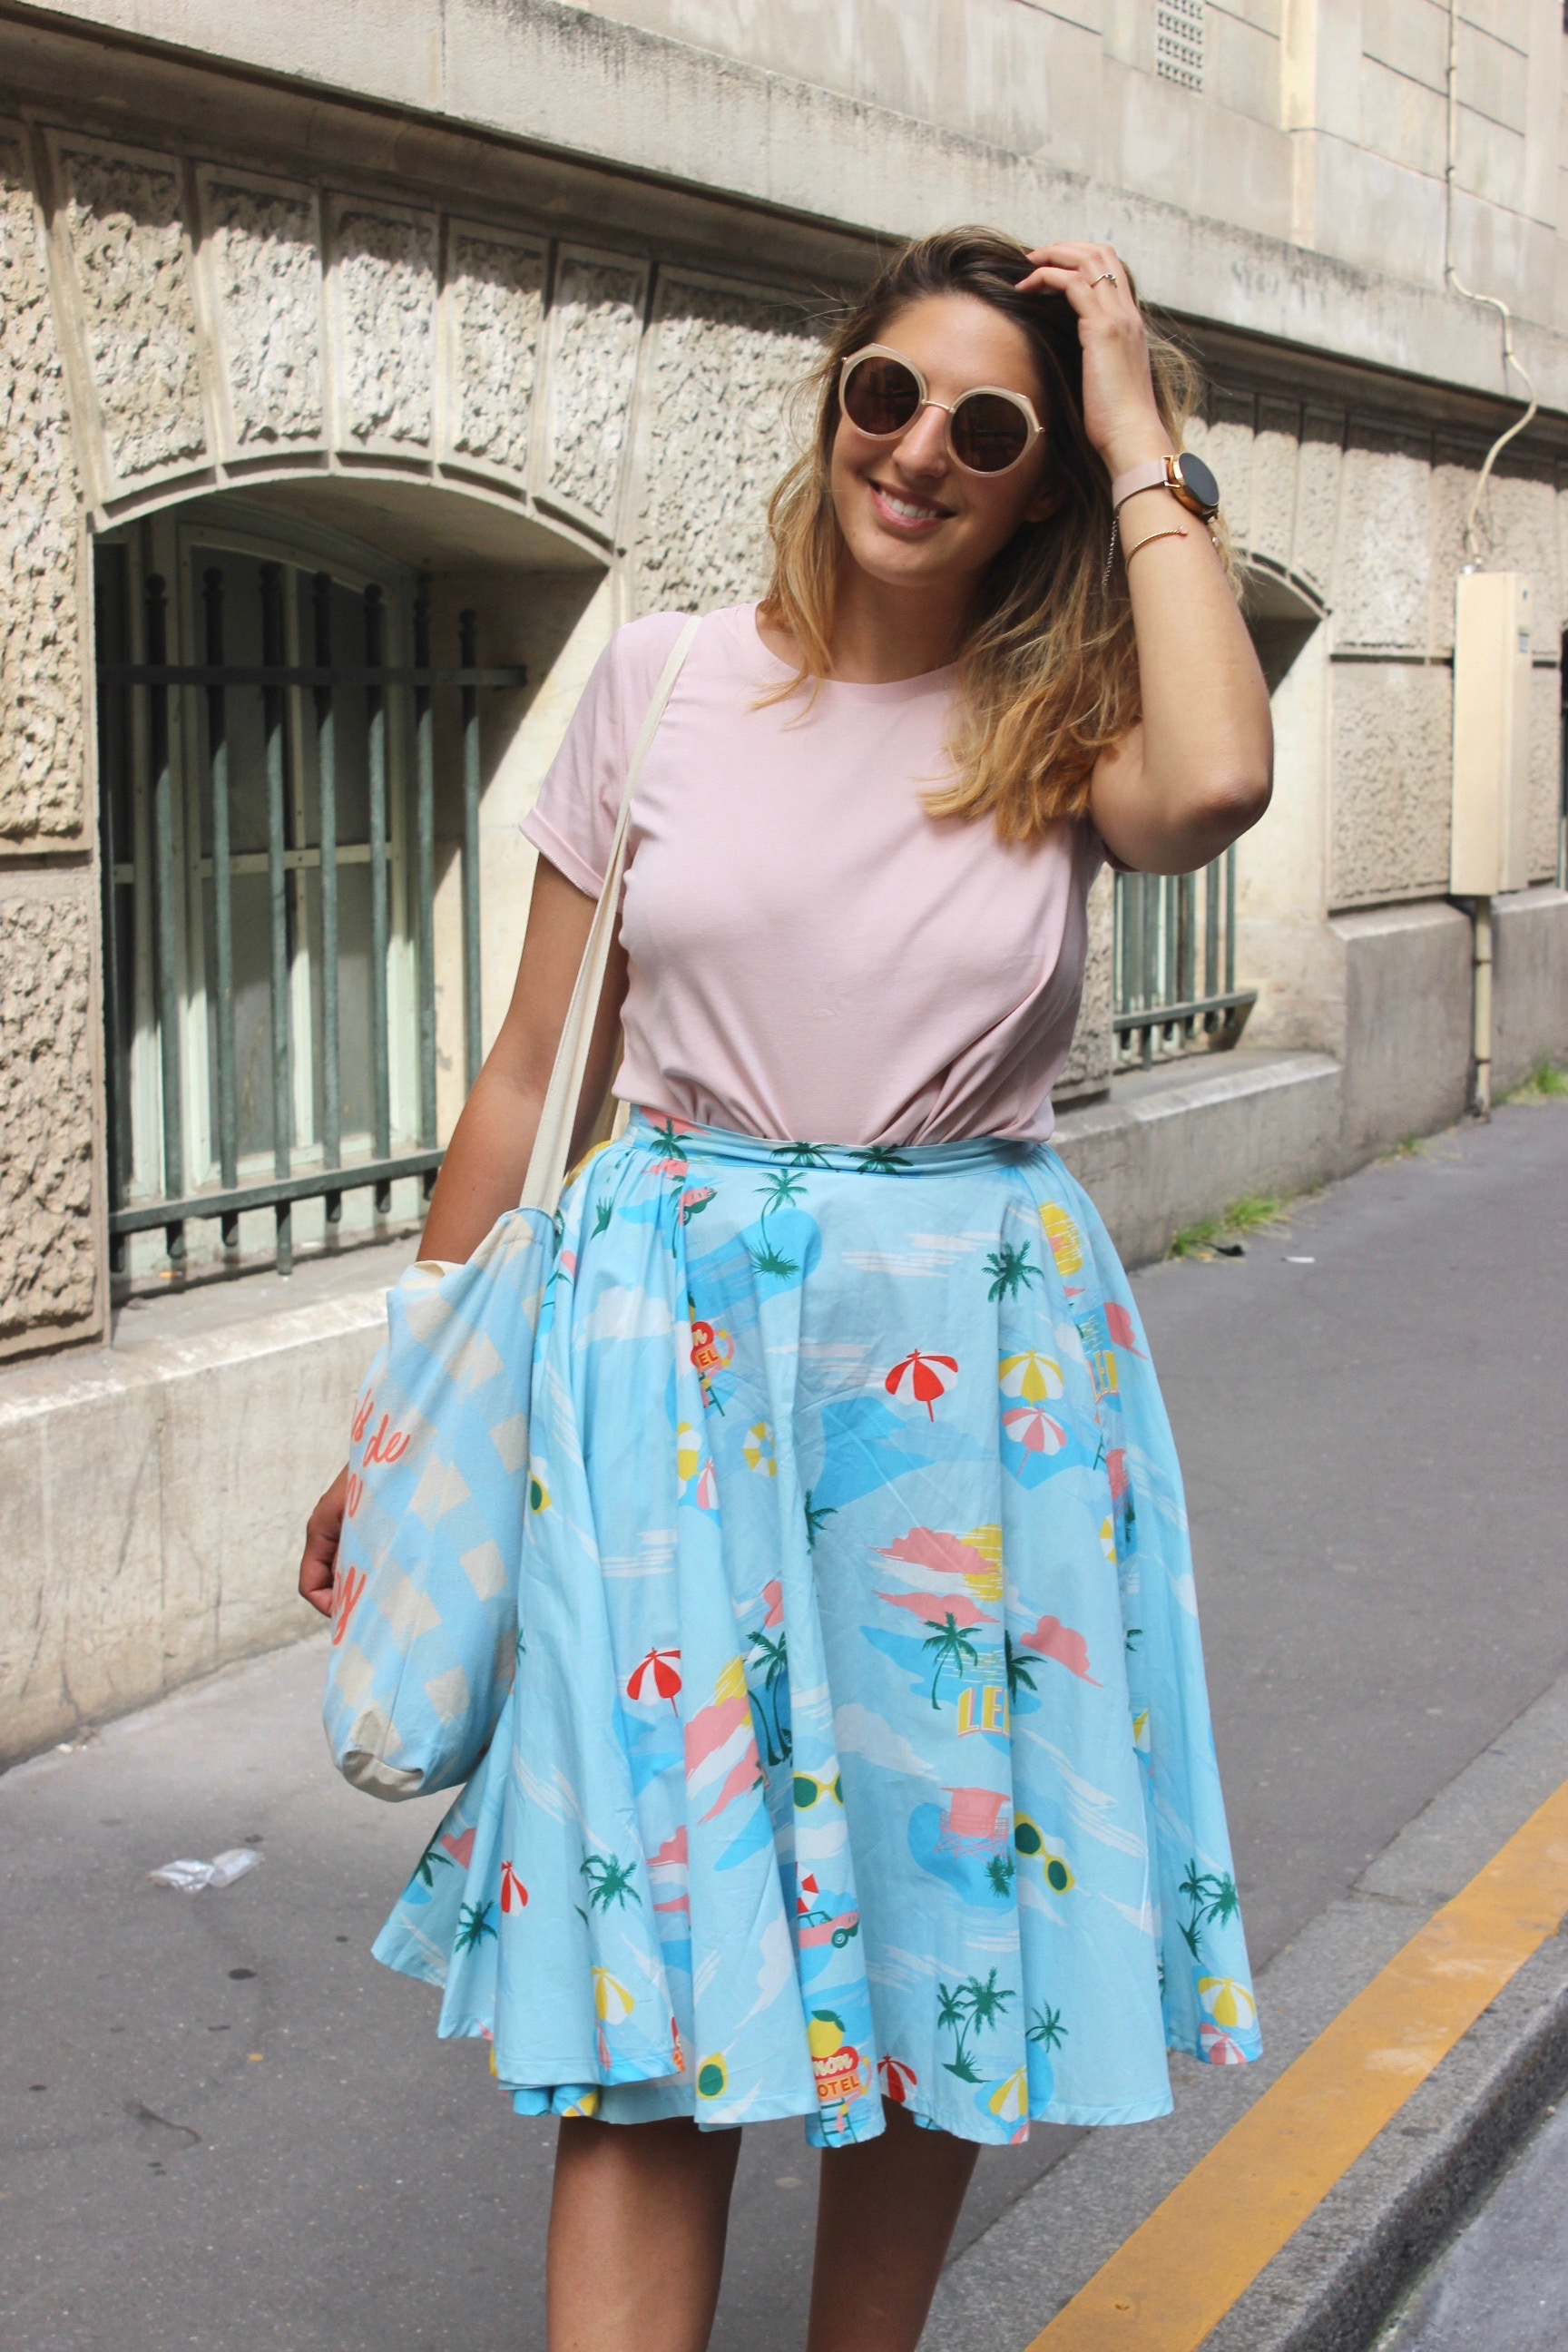 Blog-This-Kind-Of-Girl-Look-En-rose-et-bleu7